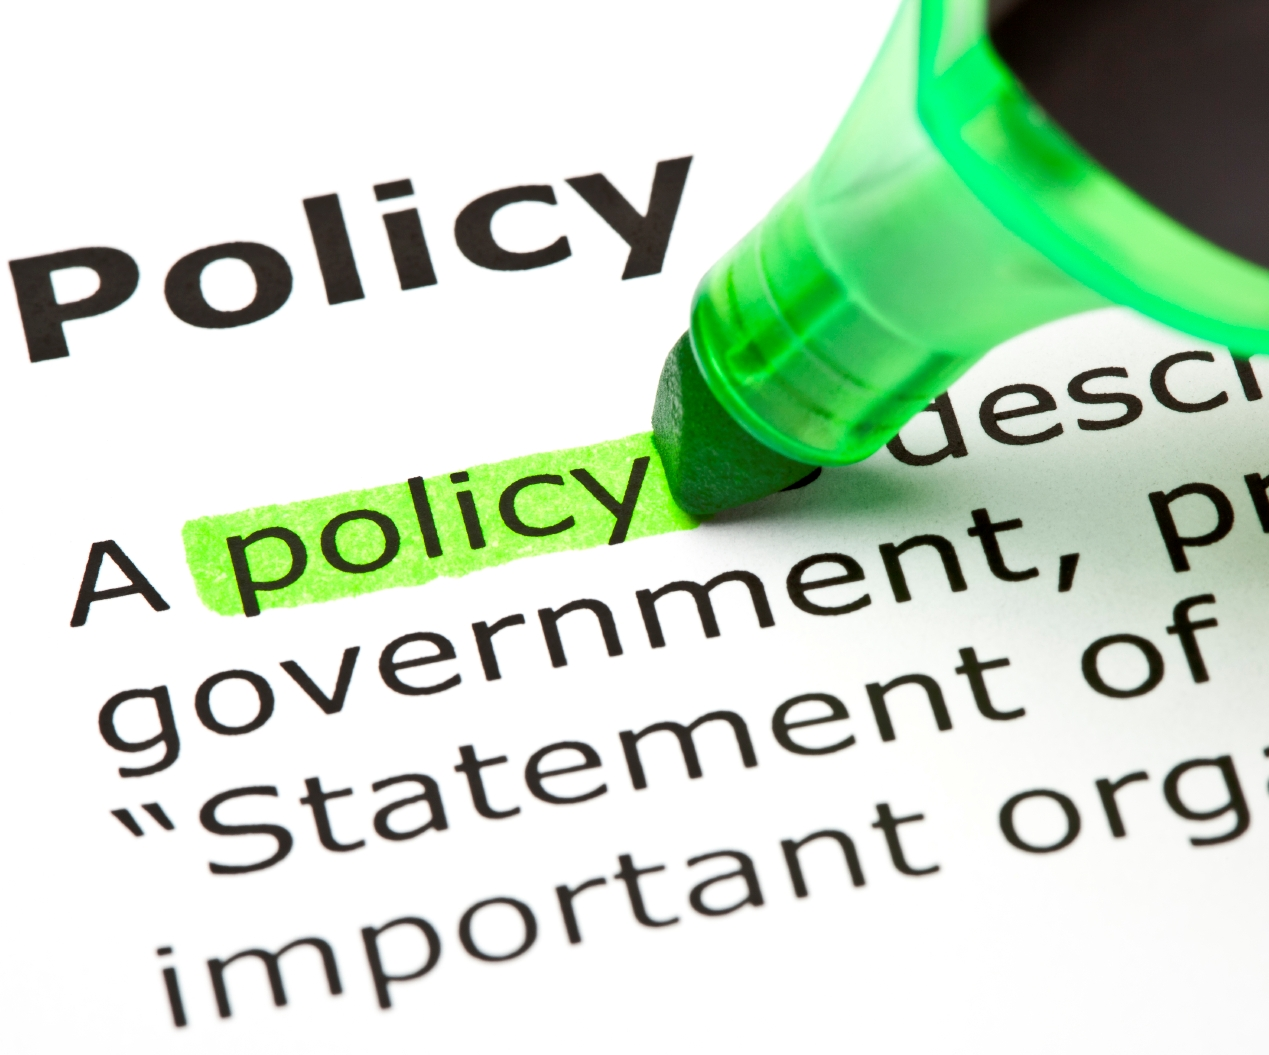 New Public Policies For The Future Of American